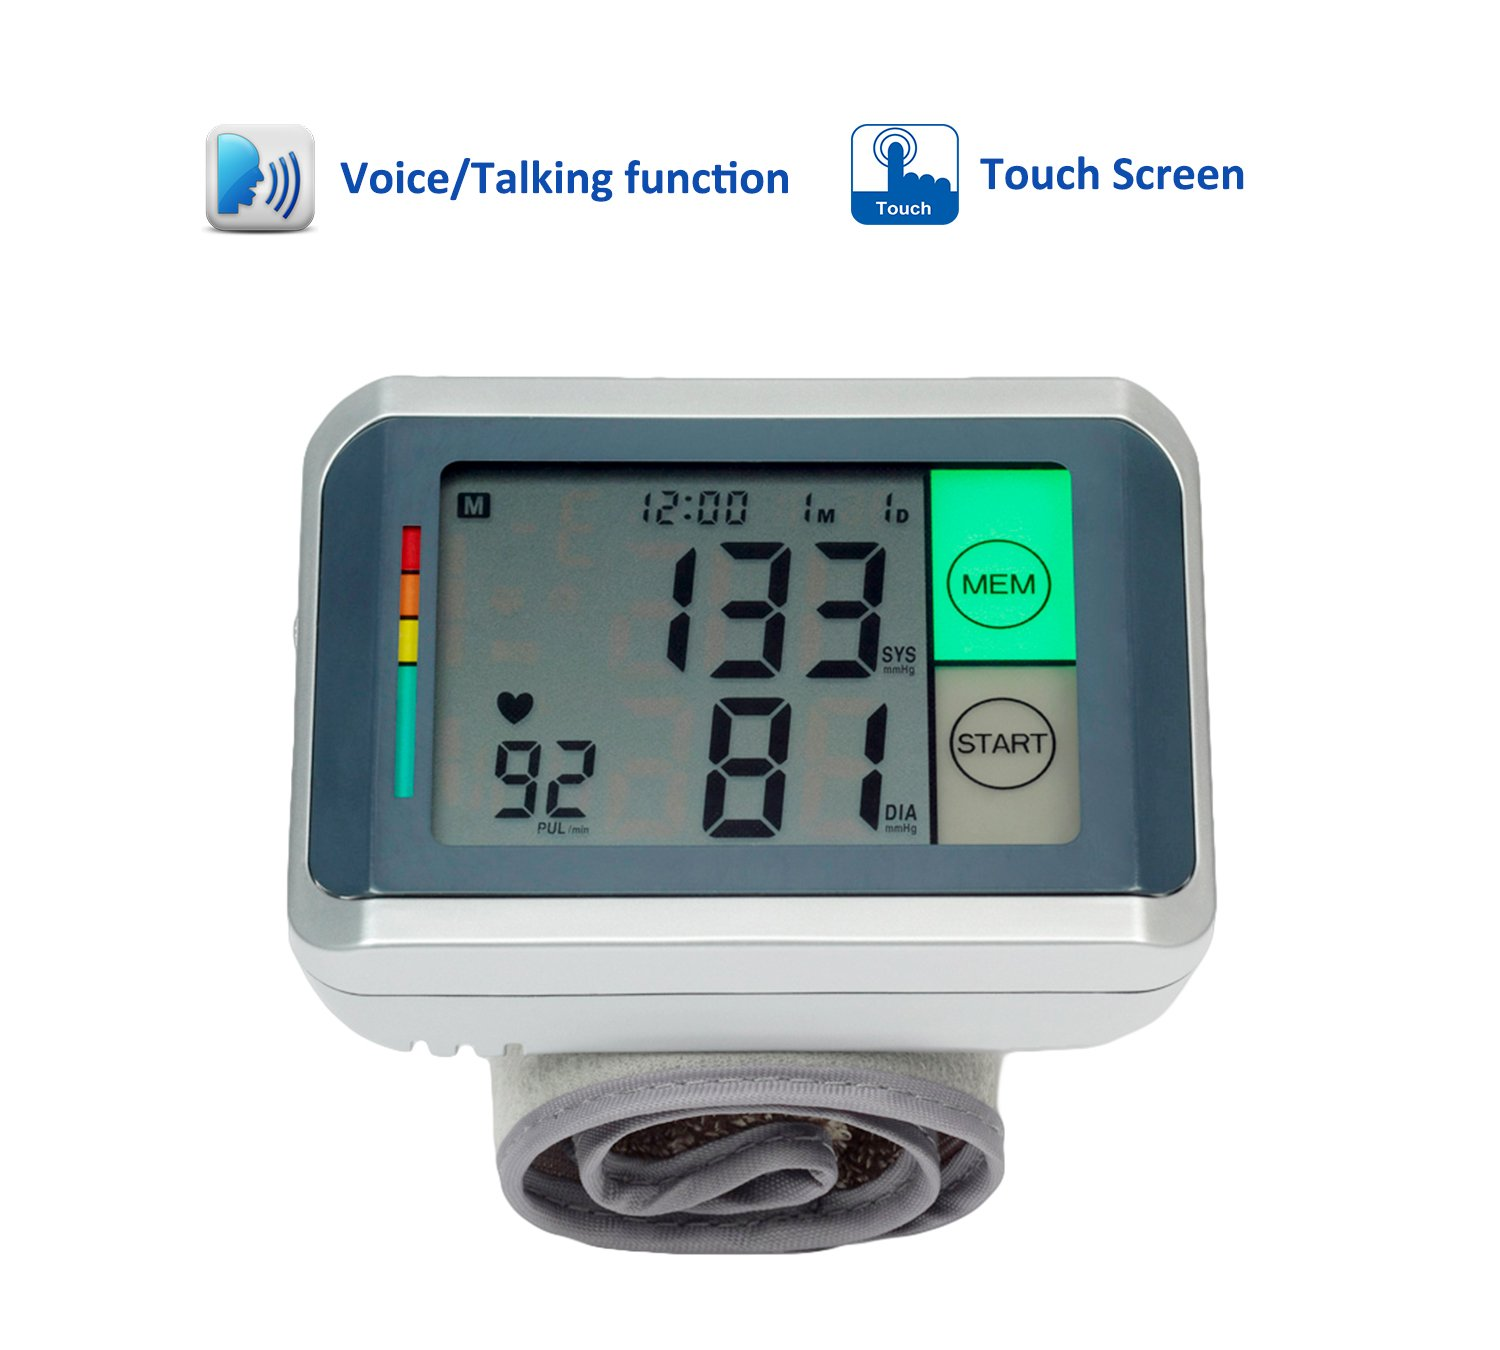 ObboMed MM-4770 Touch Screen and Voice Function, Automatic Wrist Cuff Digital Blood Pressure Monitor with Irregular Pulse and Heartbeat Detector, WHO Classification Indicator -Extra Large LCD Display